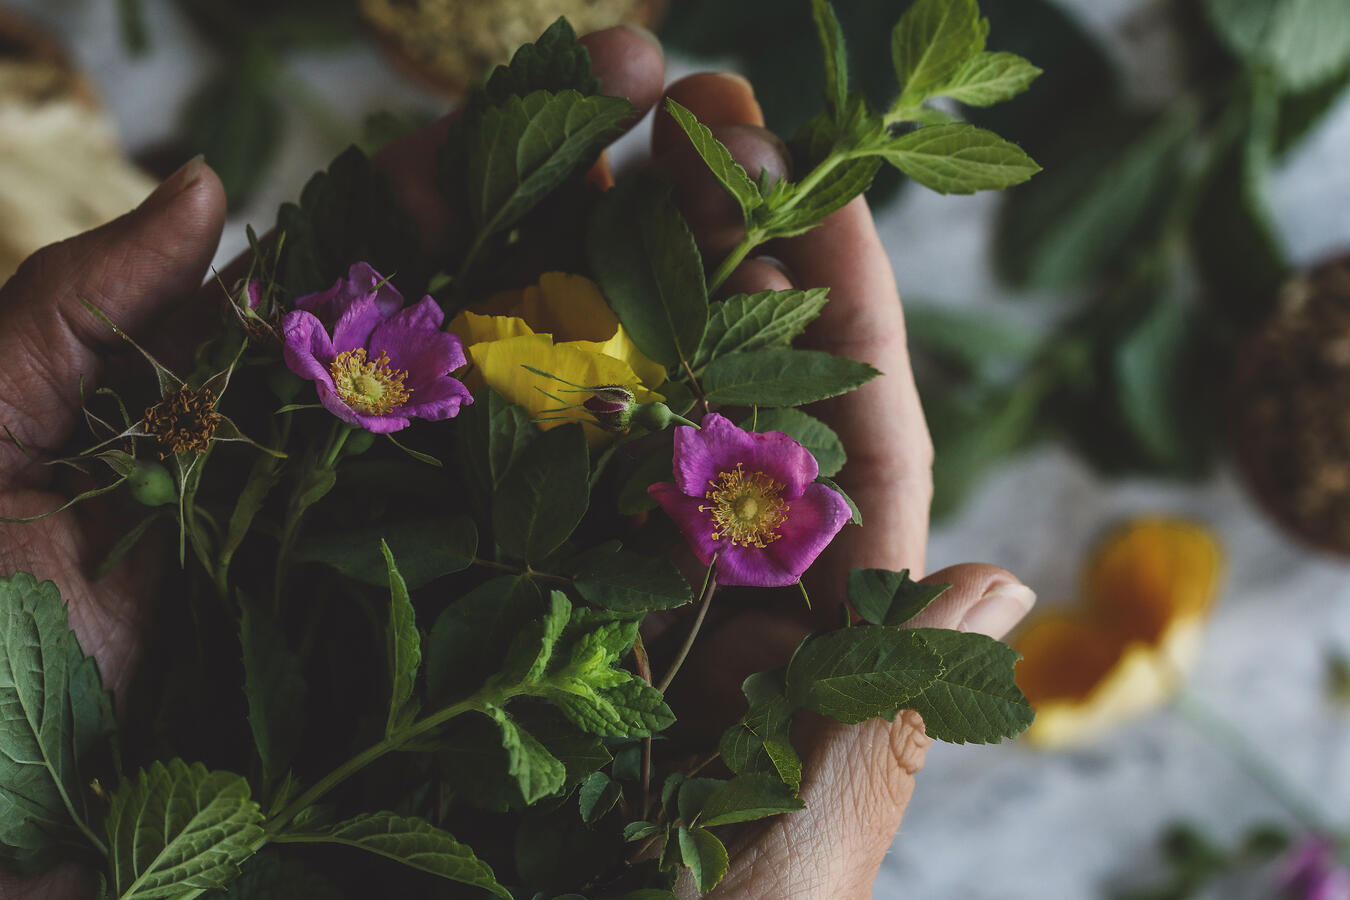 Hands holding wild roses